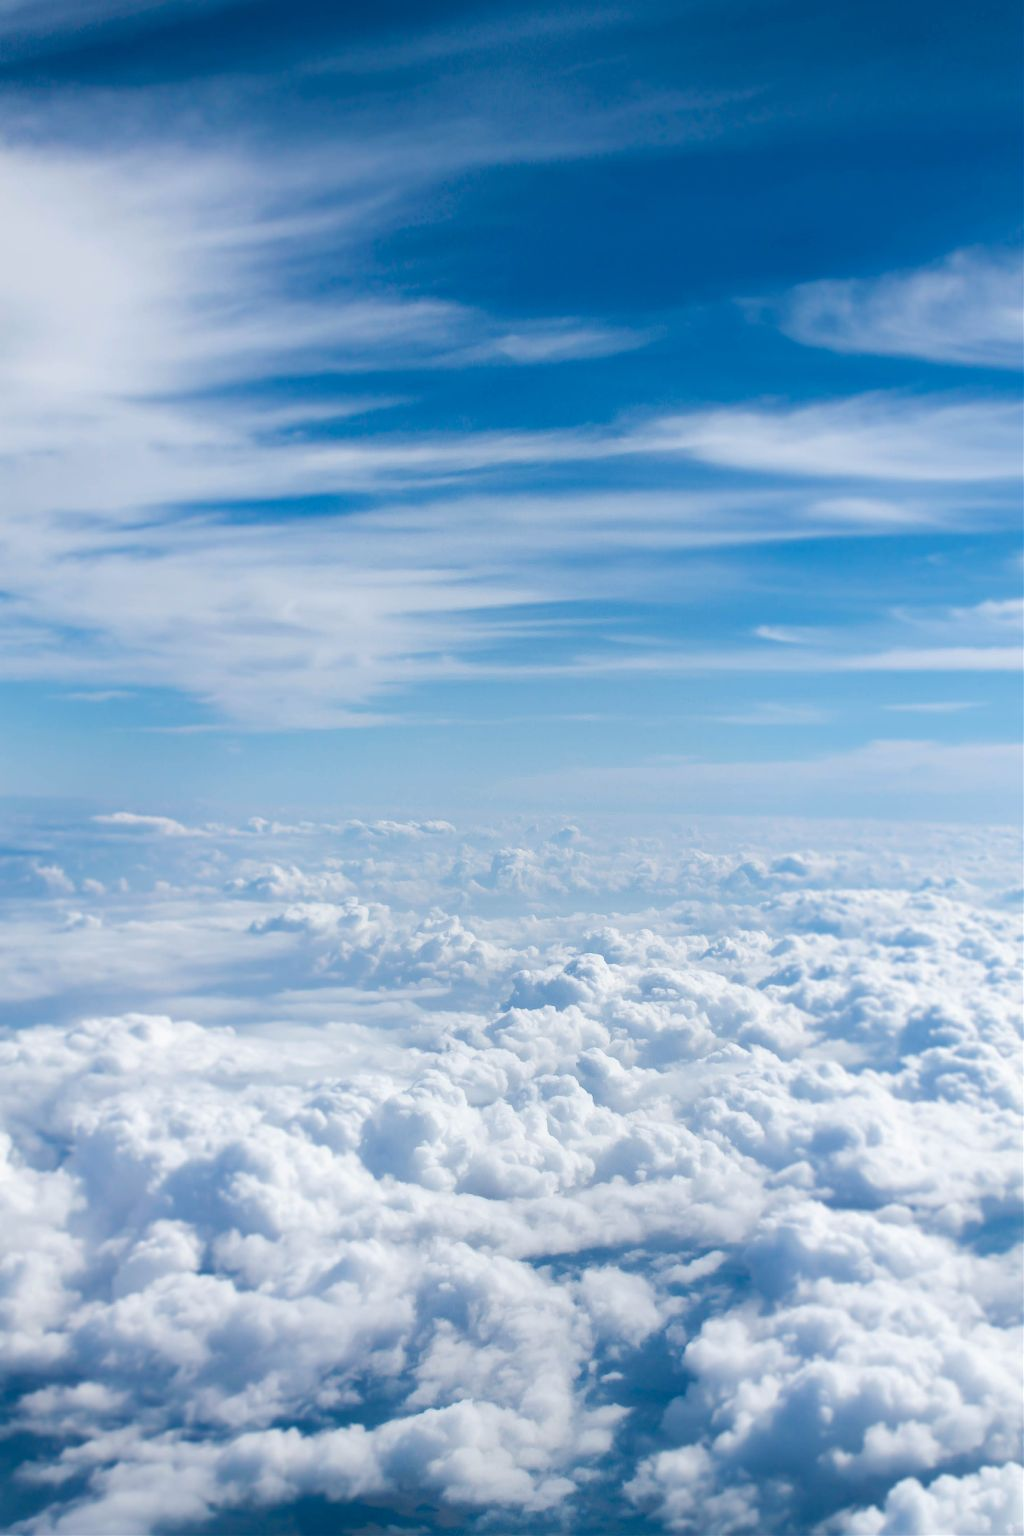 Get creative with remixing this image! Unsplash (Public Domain) #sky #clouds #background #backgrounds #freetoedit